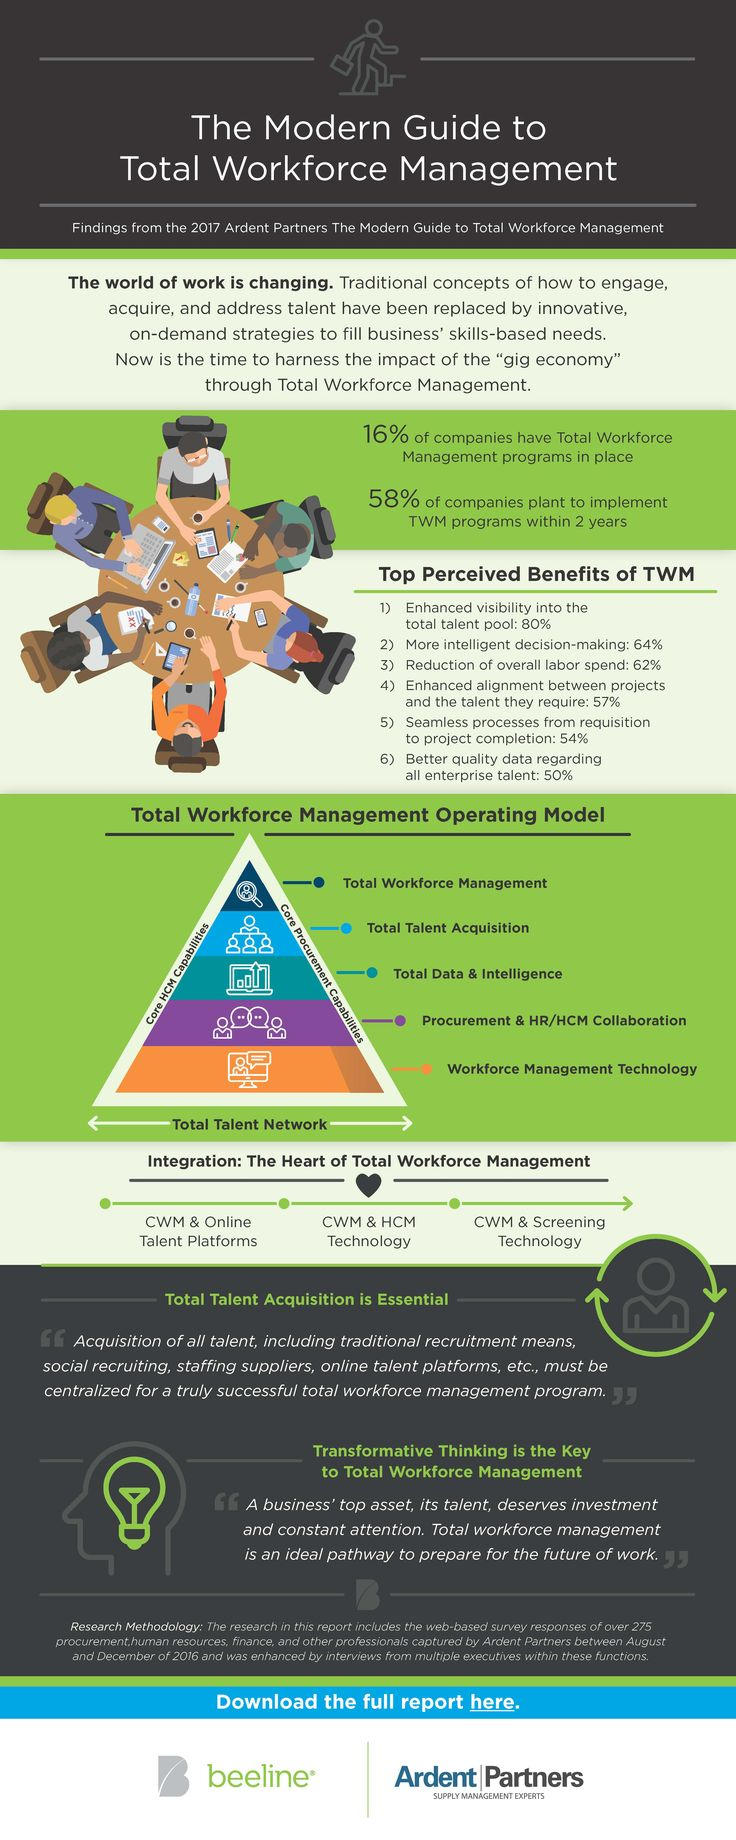 The Modern Guide to Total Workforce Management Infographic - Beeline.com